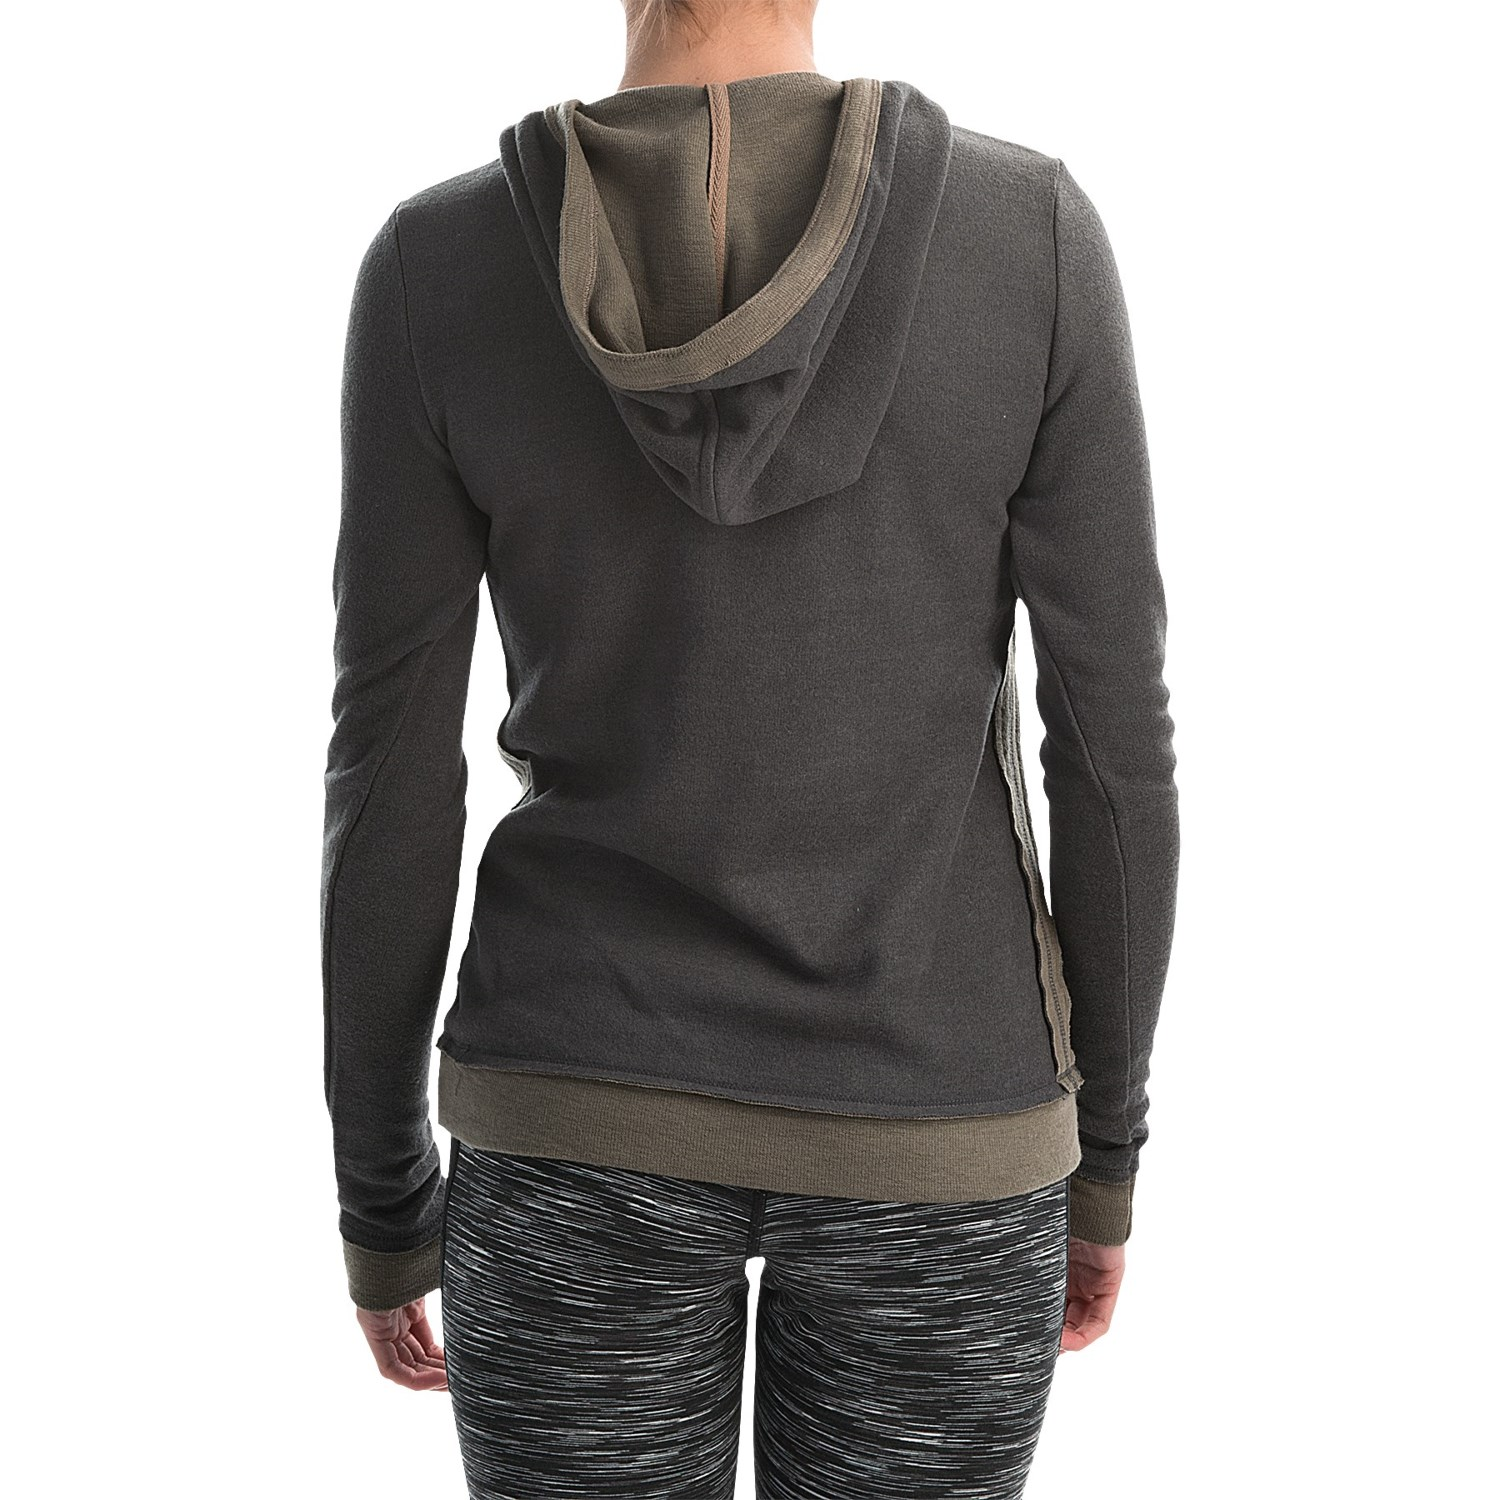 Our women's hoodie celebrates your outdoor lifestyle with Legendary® embroidery and welcome warmth. Cotton/polyester fabric is comfortable, warm, and surrounds you in softness. 3-button henley placket, adjustable 3-piece hood with drawstring, kangaroo pocket.